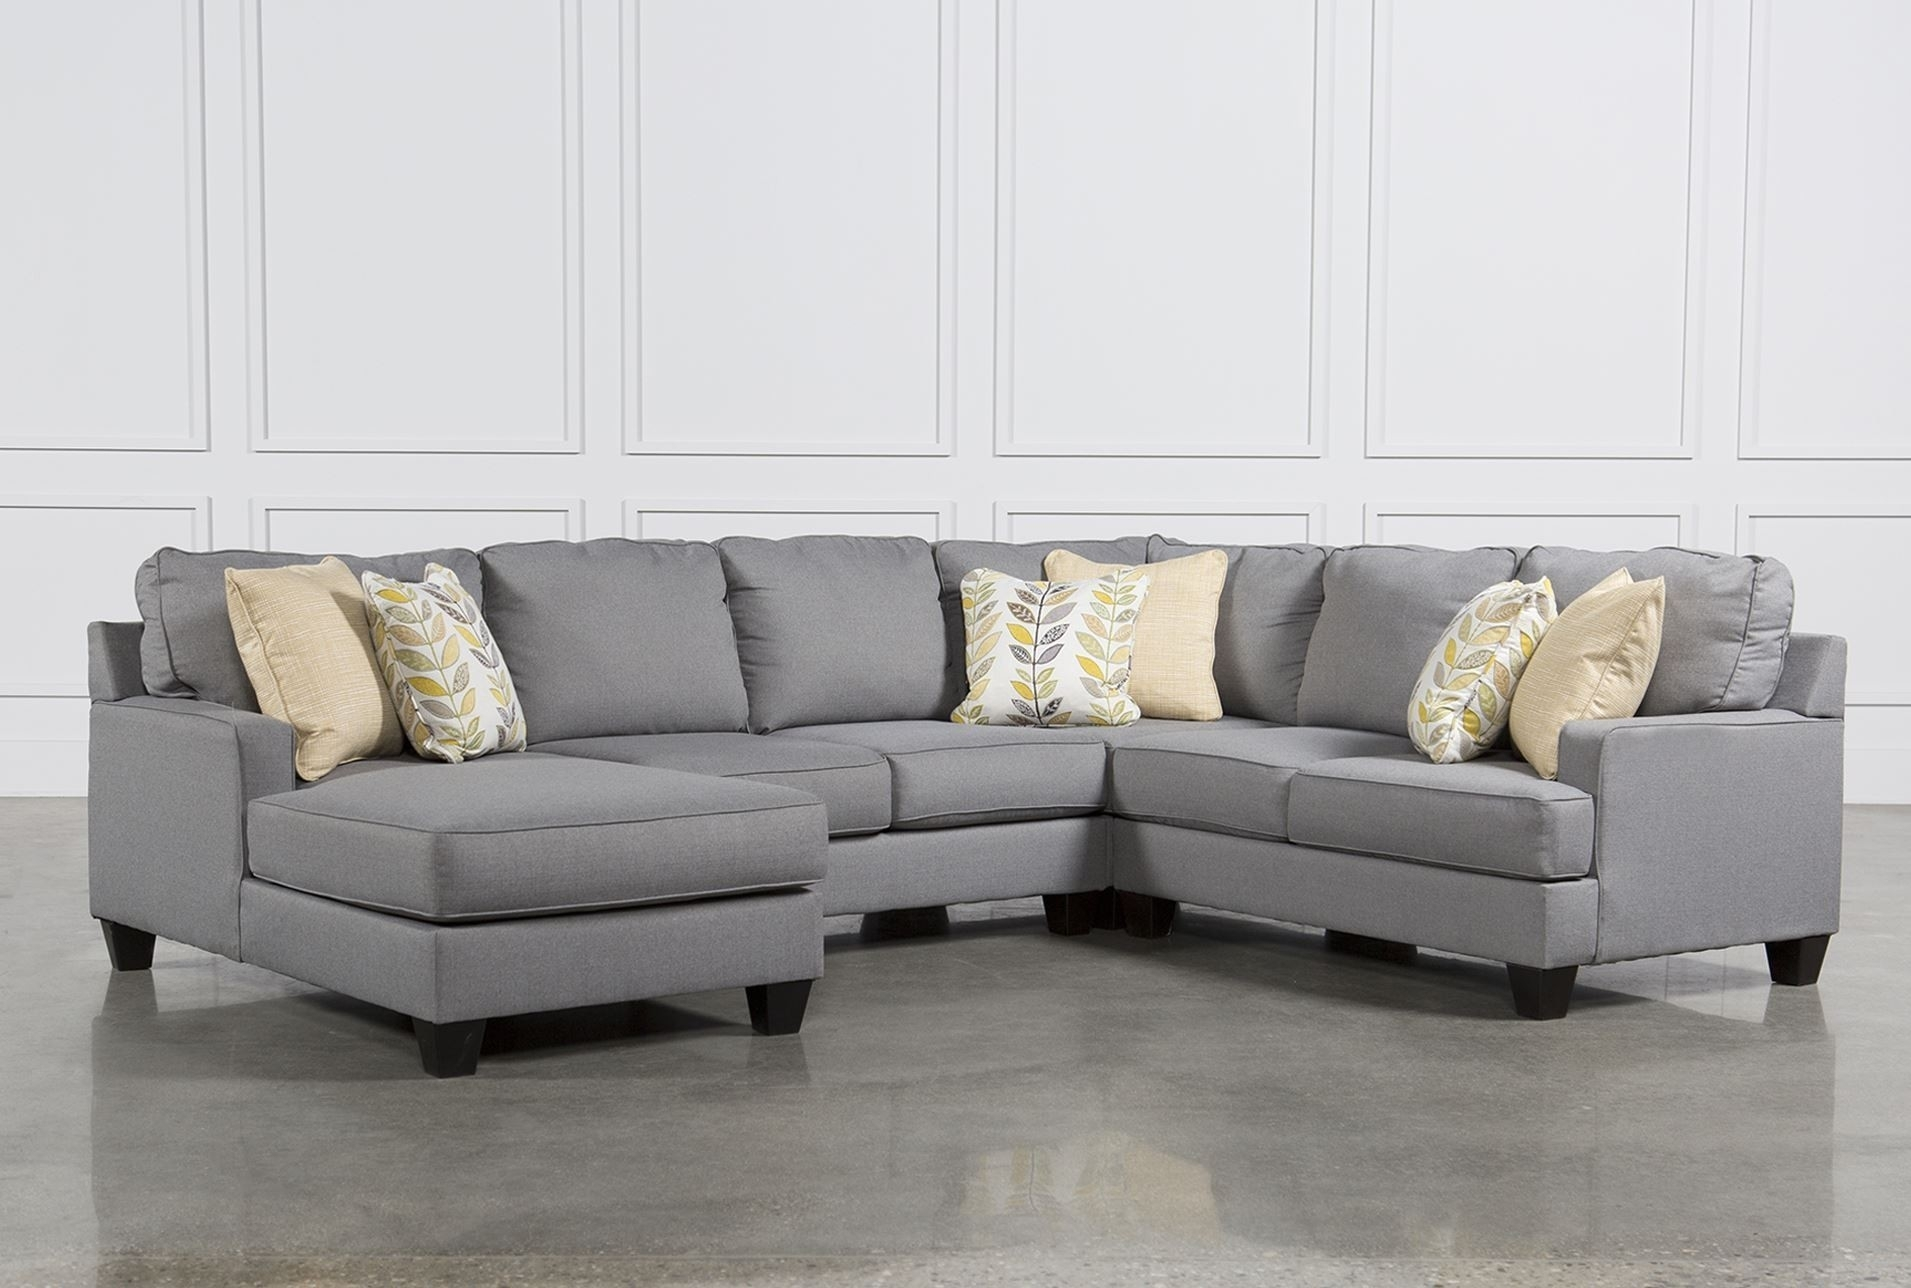 Living Spaces Sectional Sofas – Implantologiabogota (View 19 of 25)